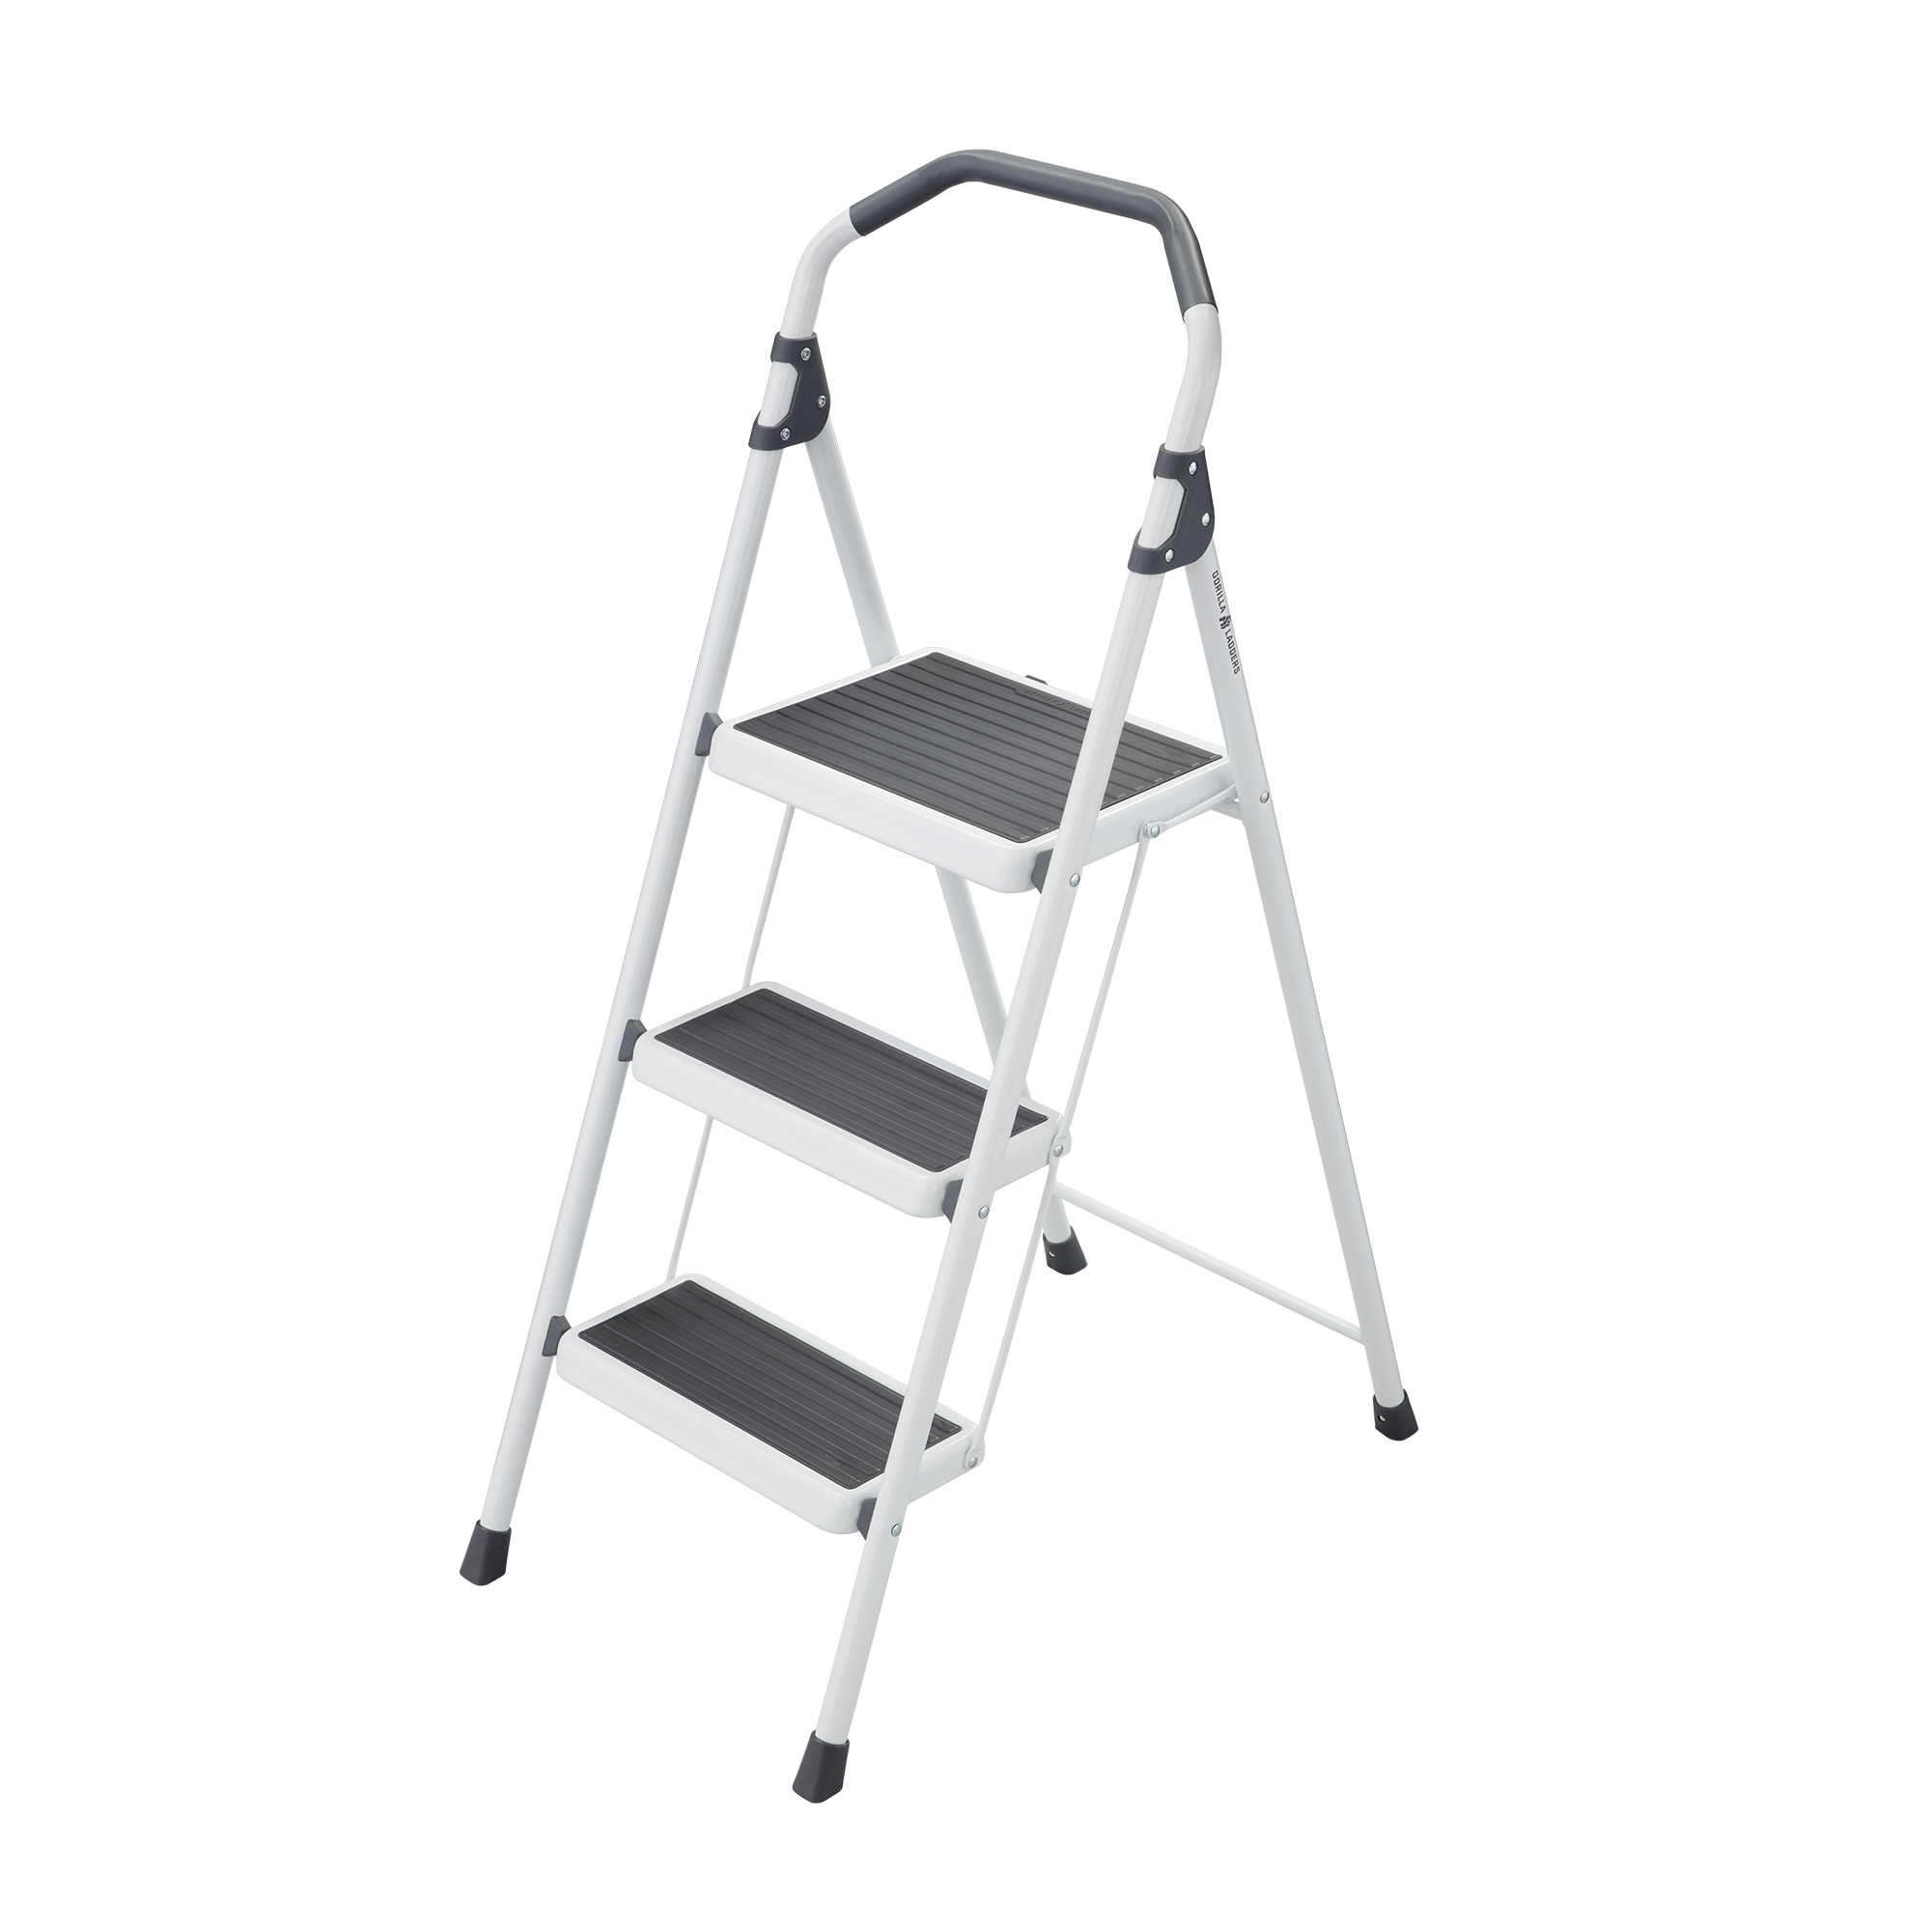 Phenomenal Gorilla Laddershousehold Gorilla Ladders Bralicious Painted Fabric Chair Ideas Braliciousco